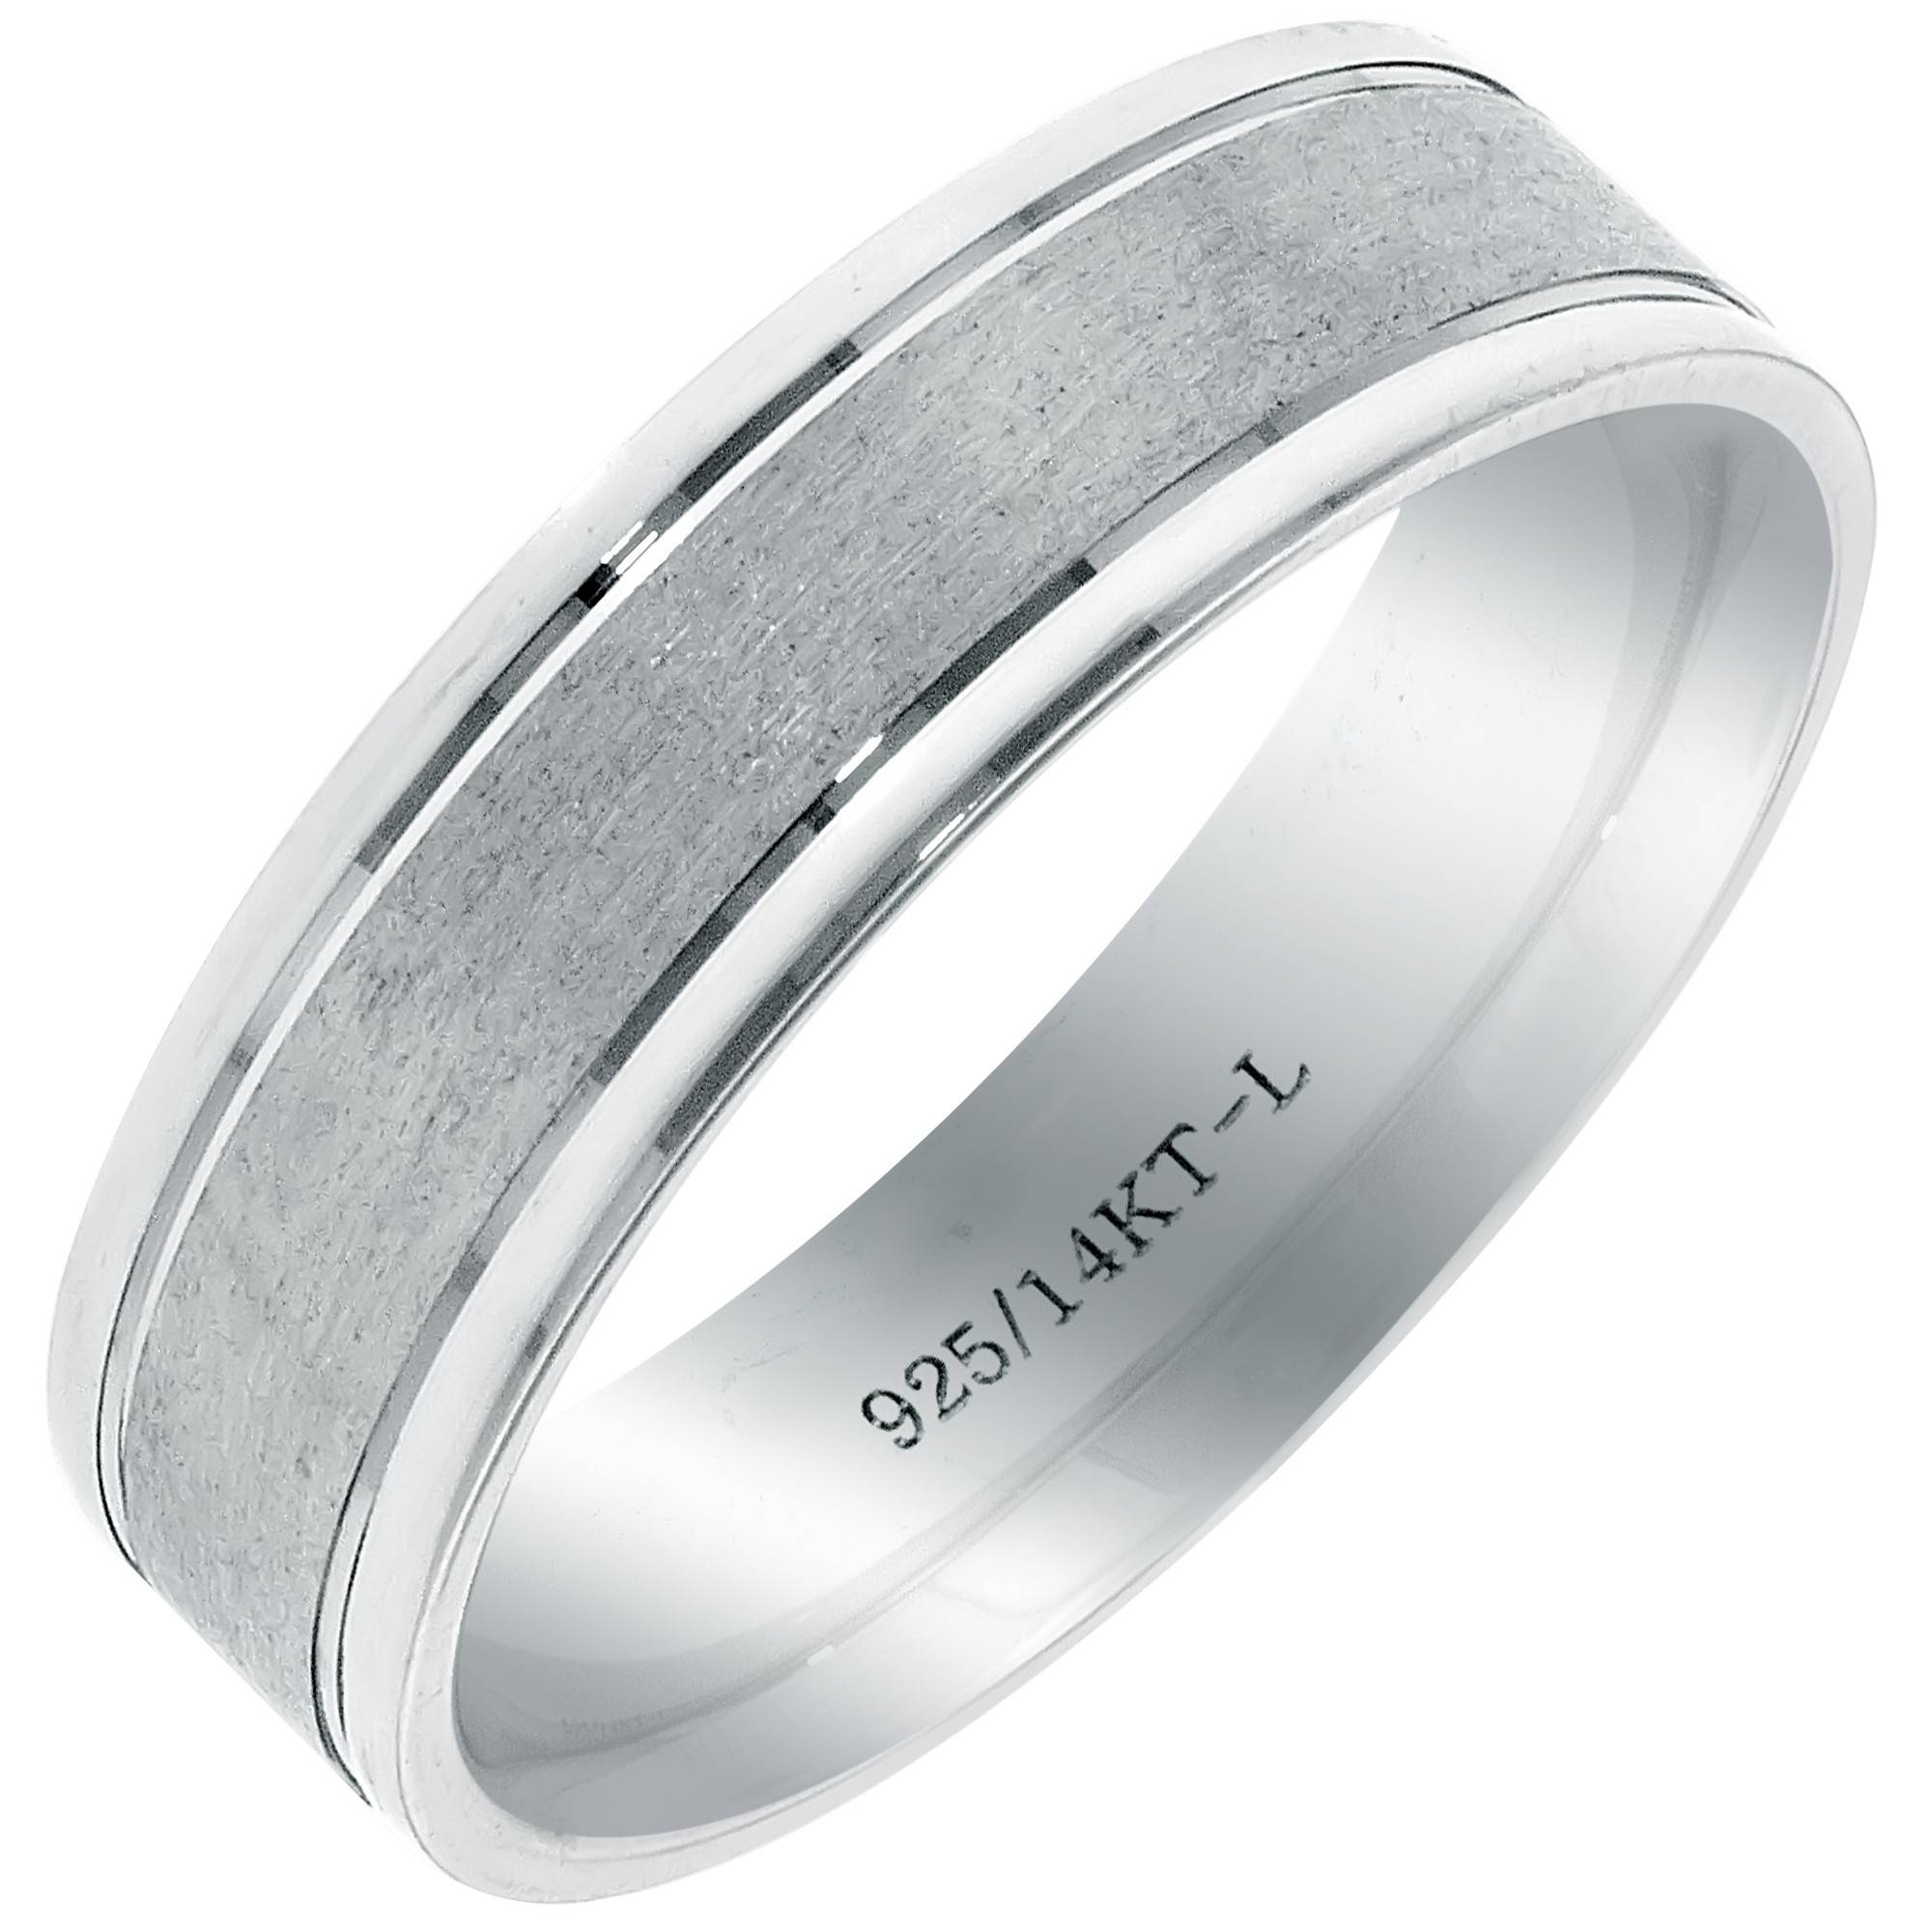 Bond2 Mens Wedding Band In 14Kt White Gold And Sterling Silver (6Mm) Within Sterling Silver Mens Wedding Bands (Gallery 3 of 15)